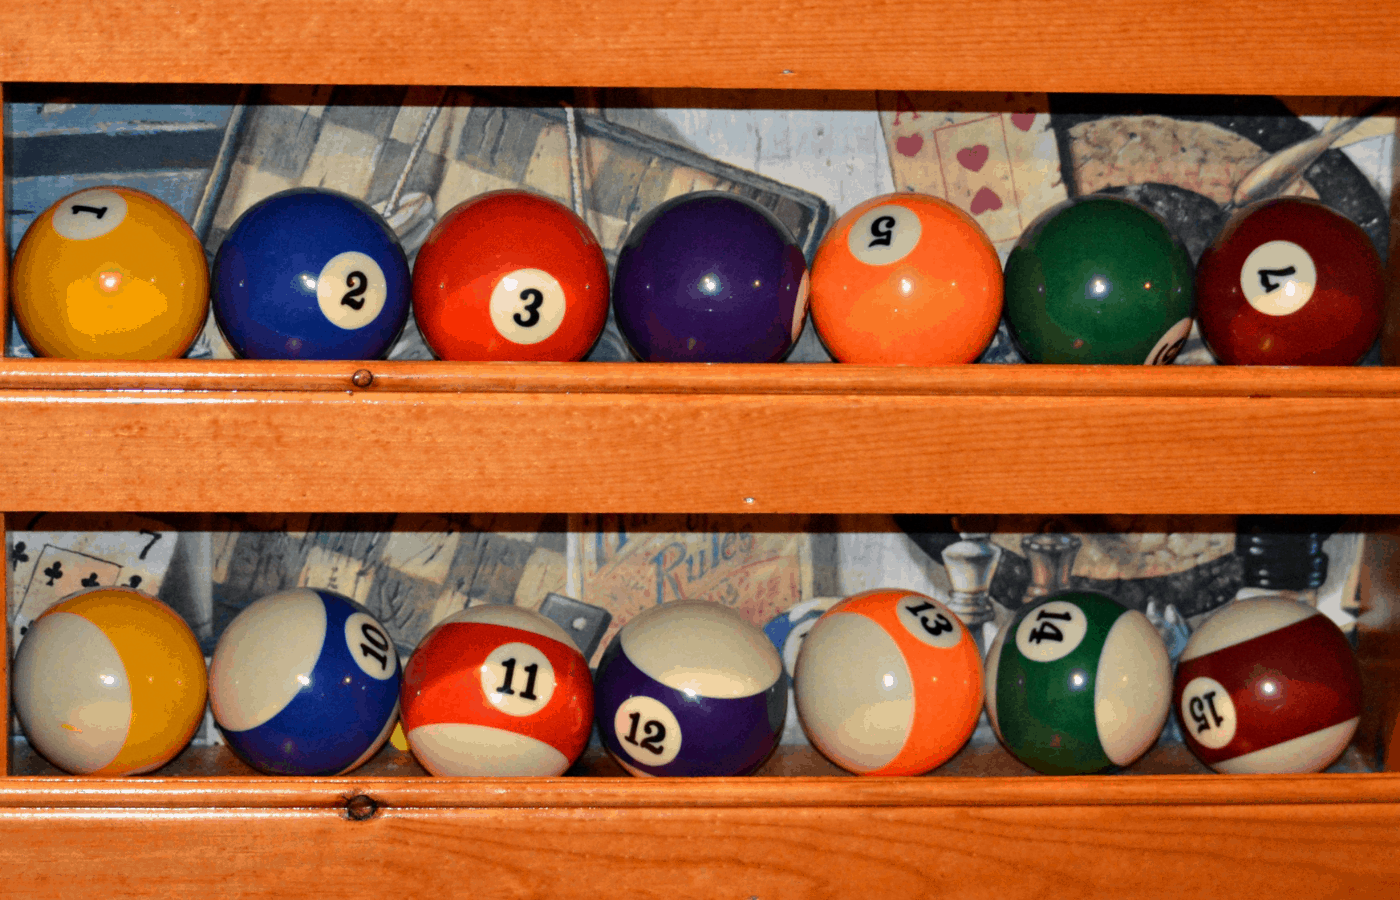 things to do with old pool balls